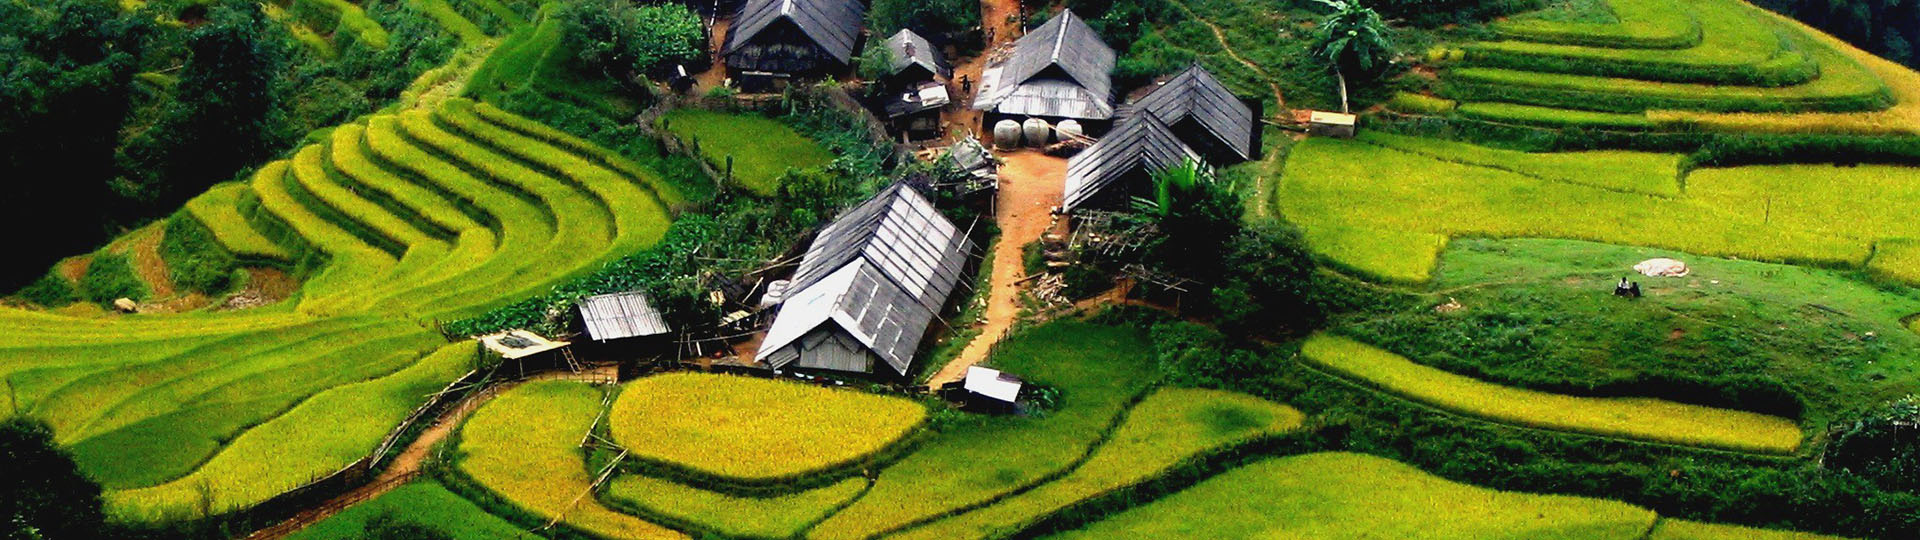 The highlight beauty of Vietnamese villages